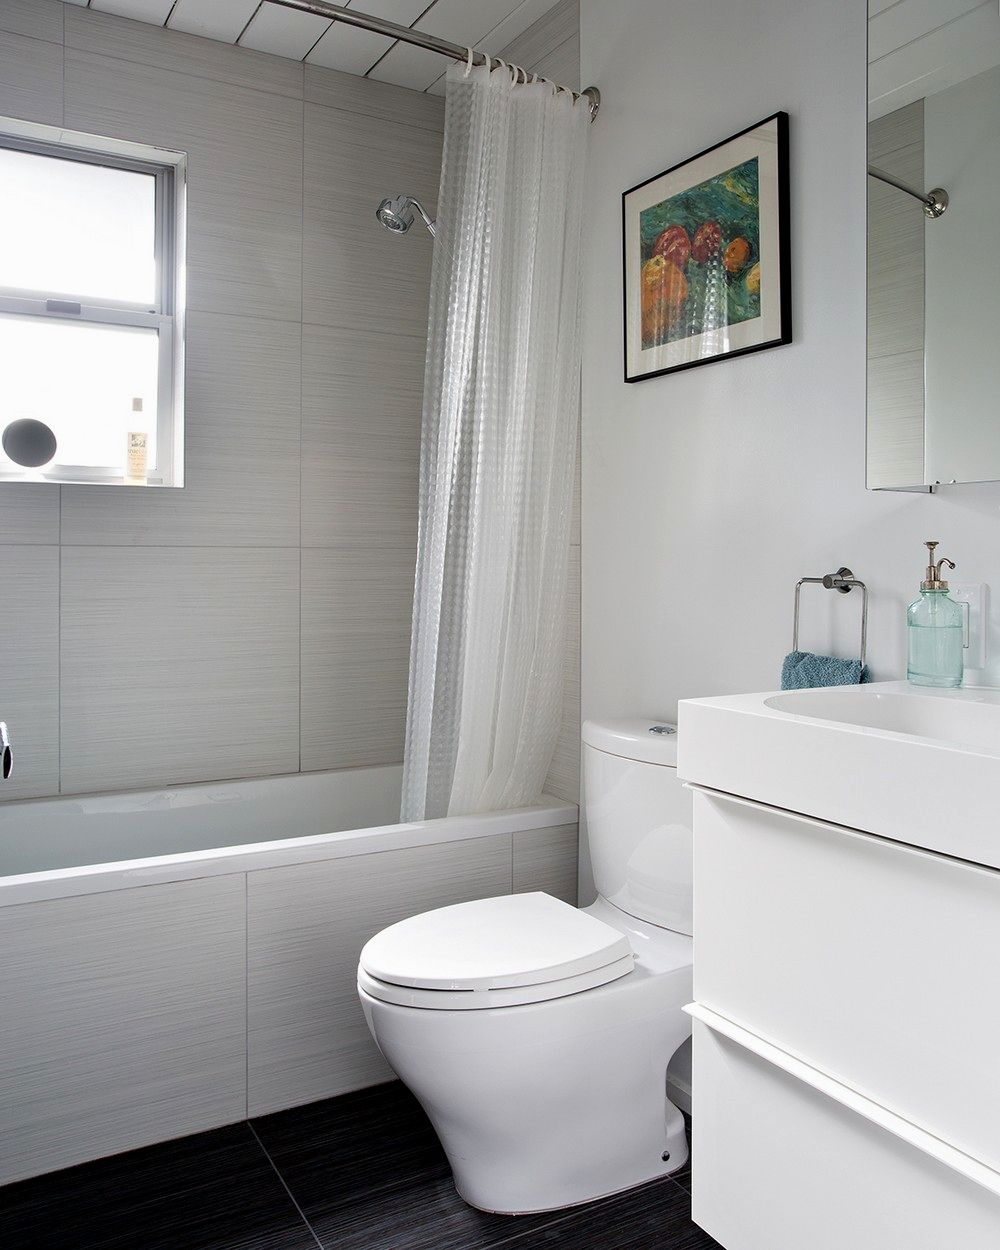 best of how to remodel a bathroom collection-New How to Remodel A Bathroom Image